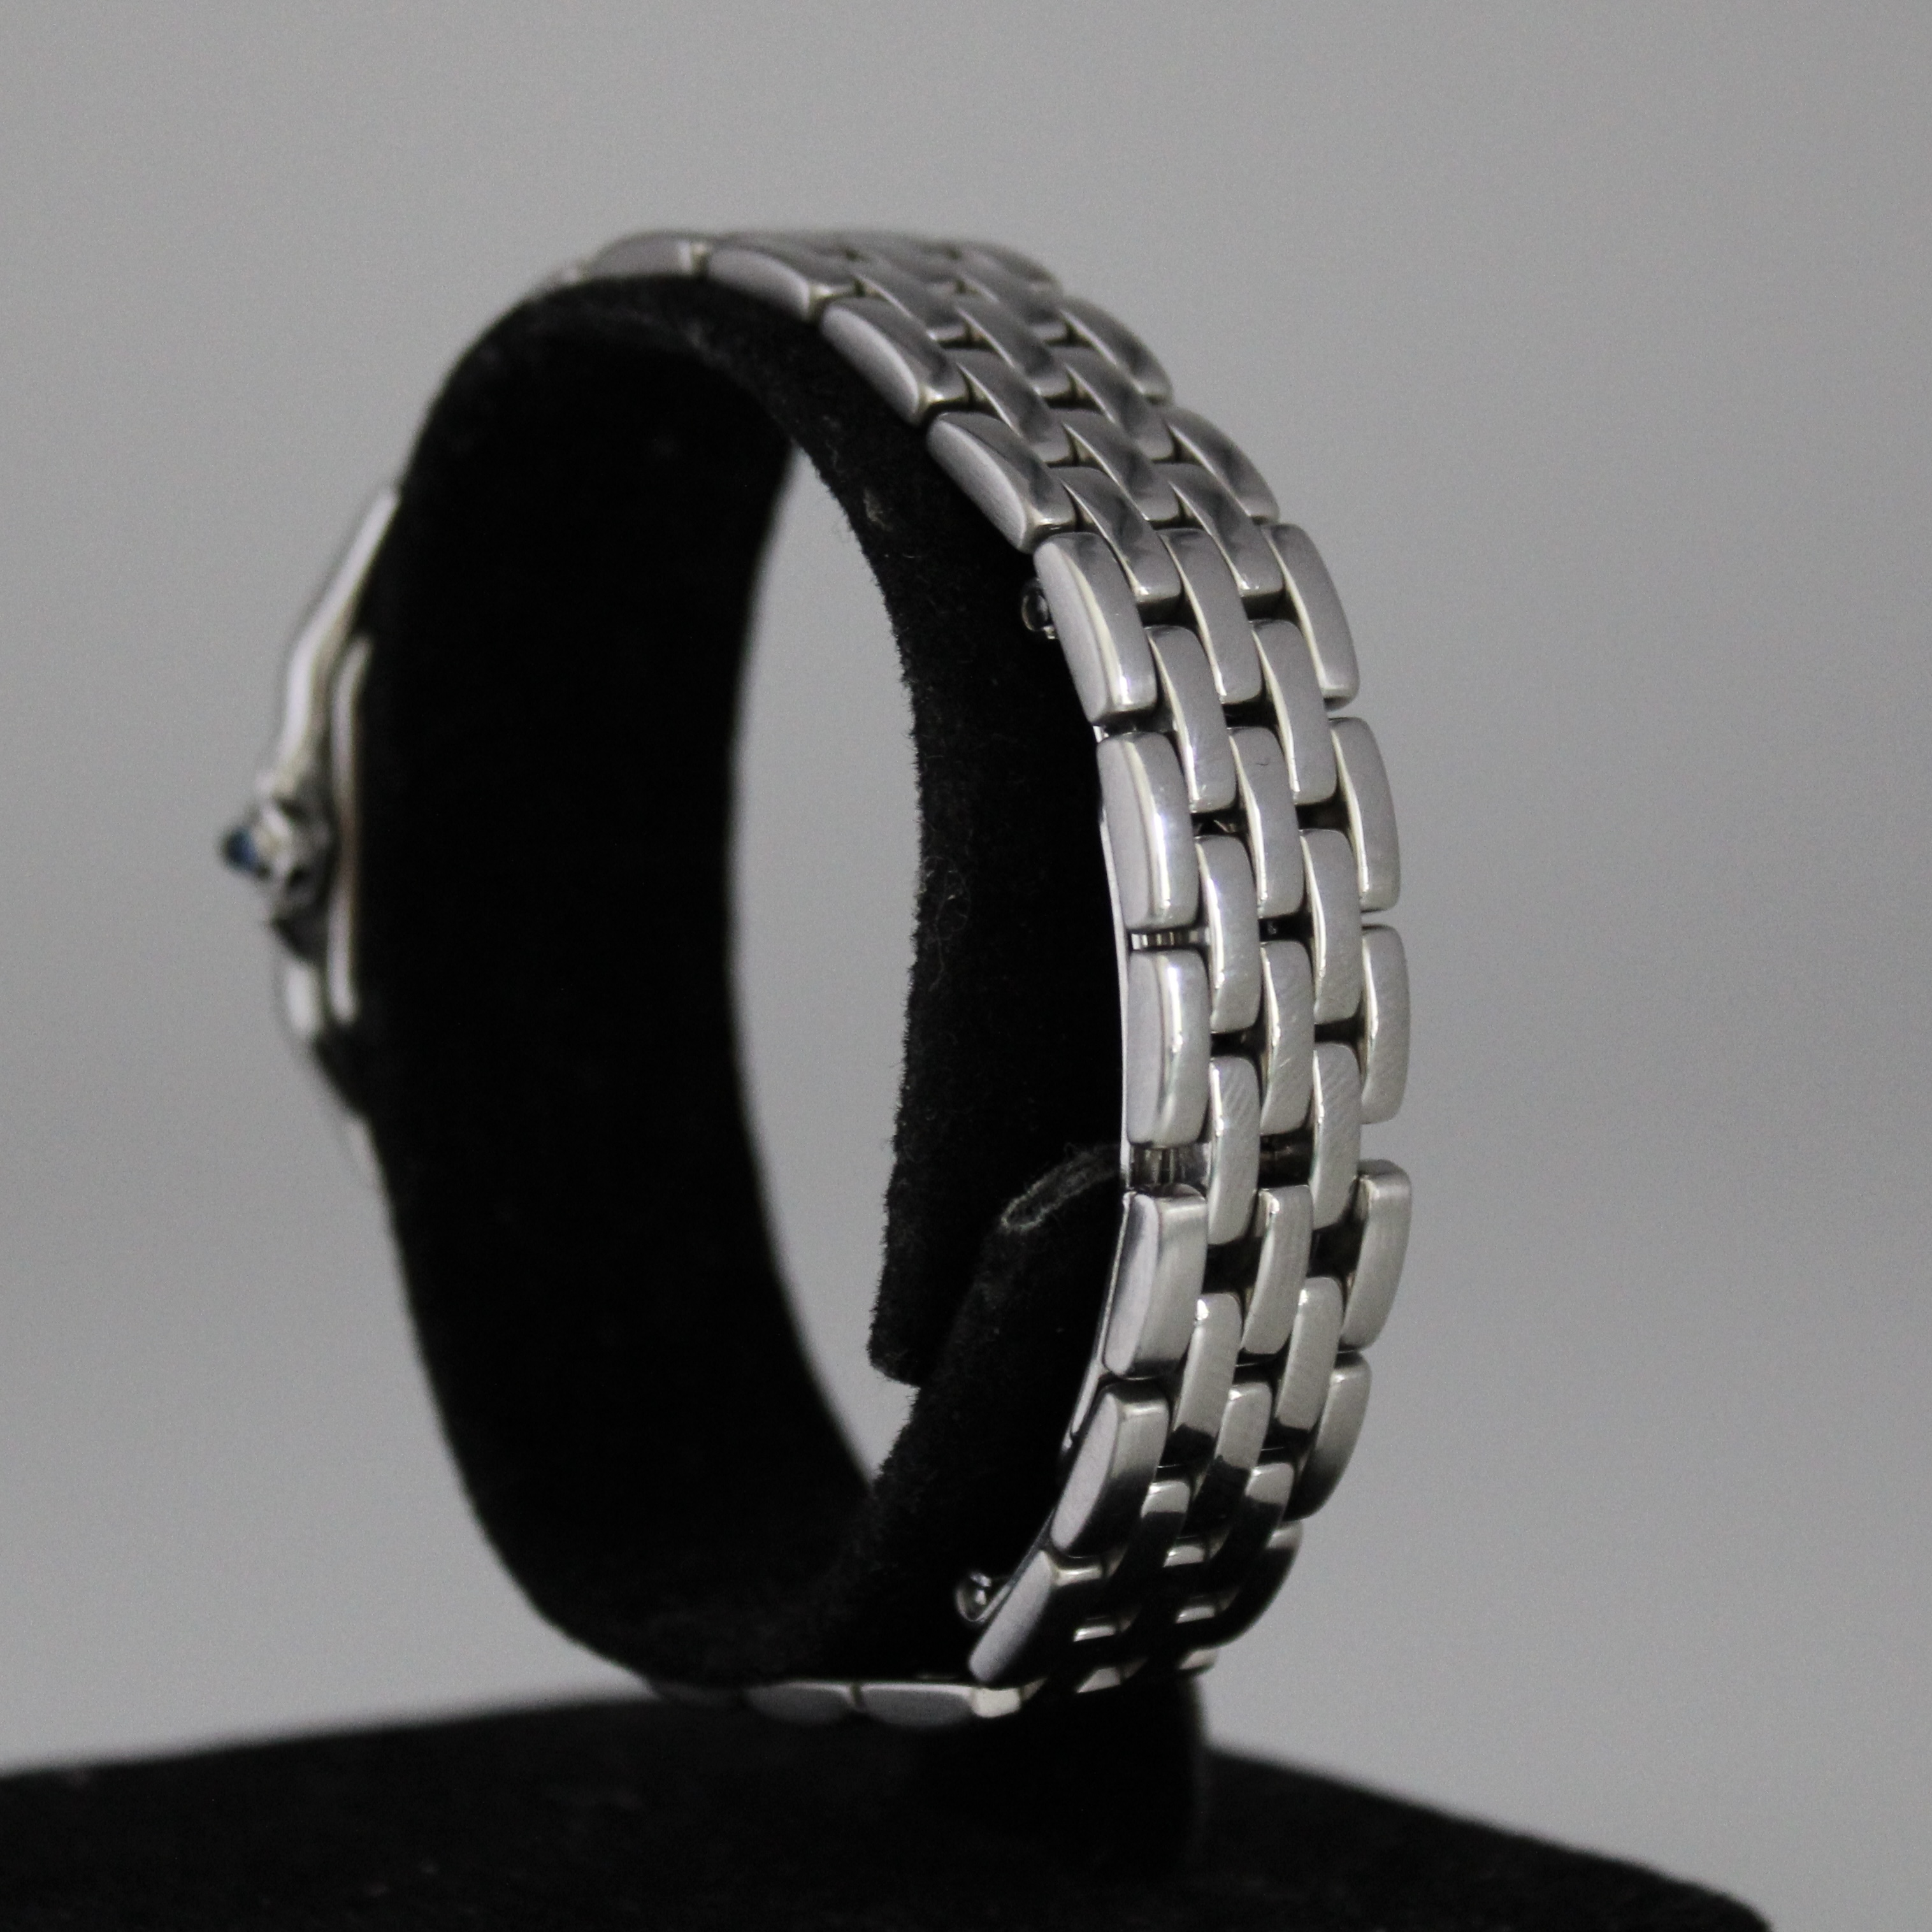 Cartier Panthere ref 1320 - Image 3 of 4